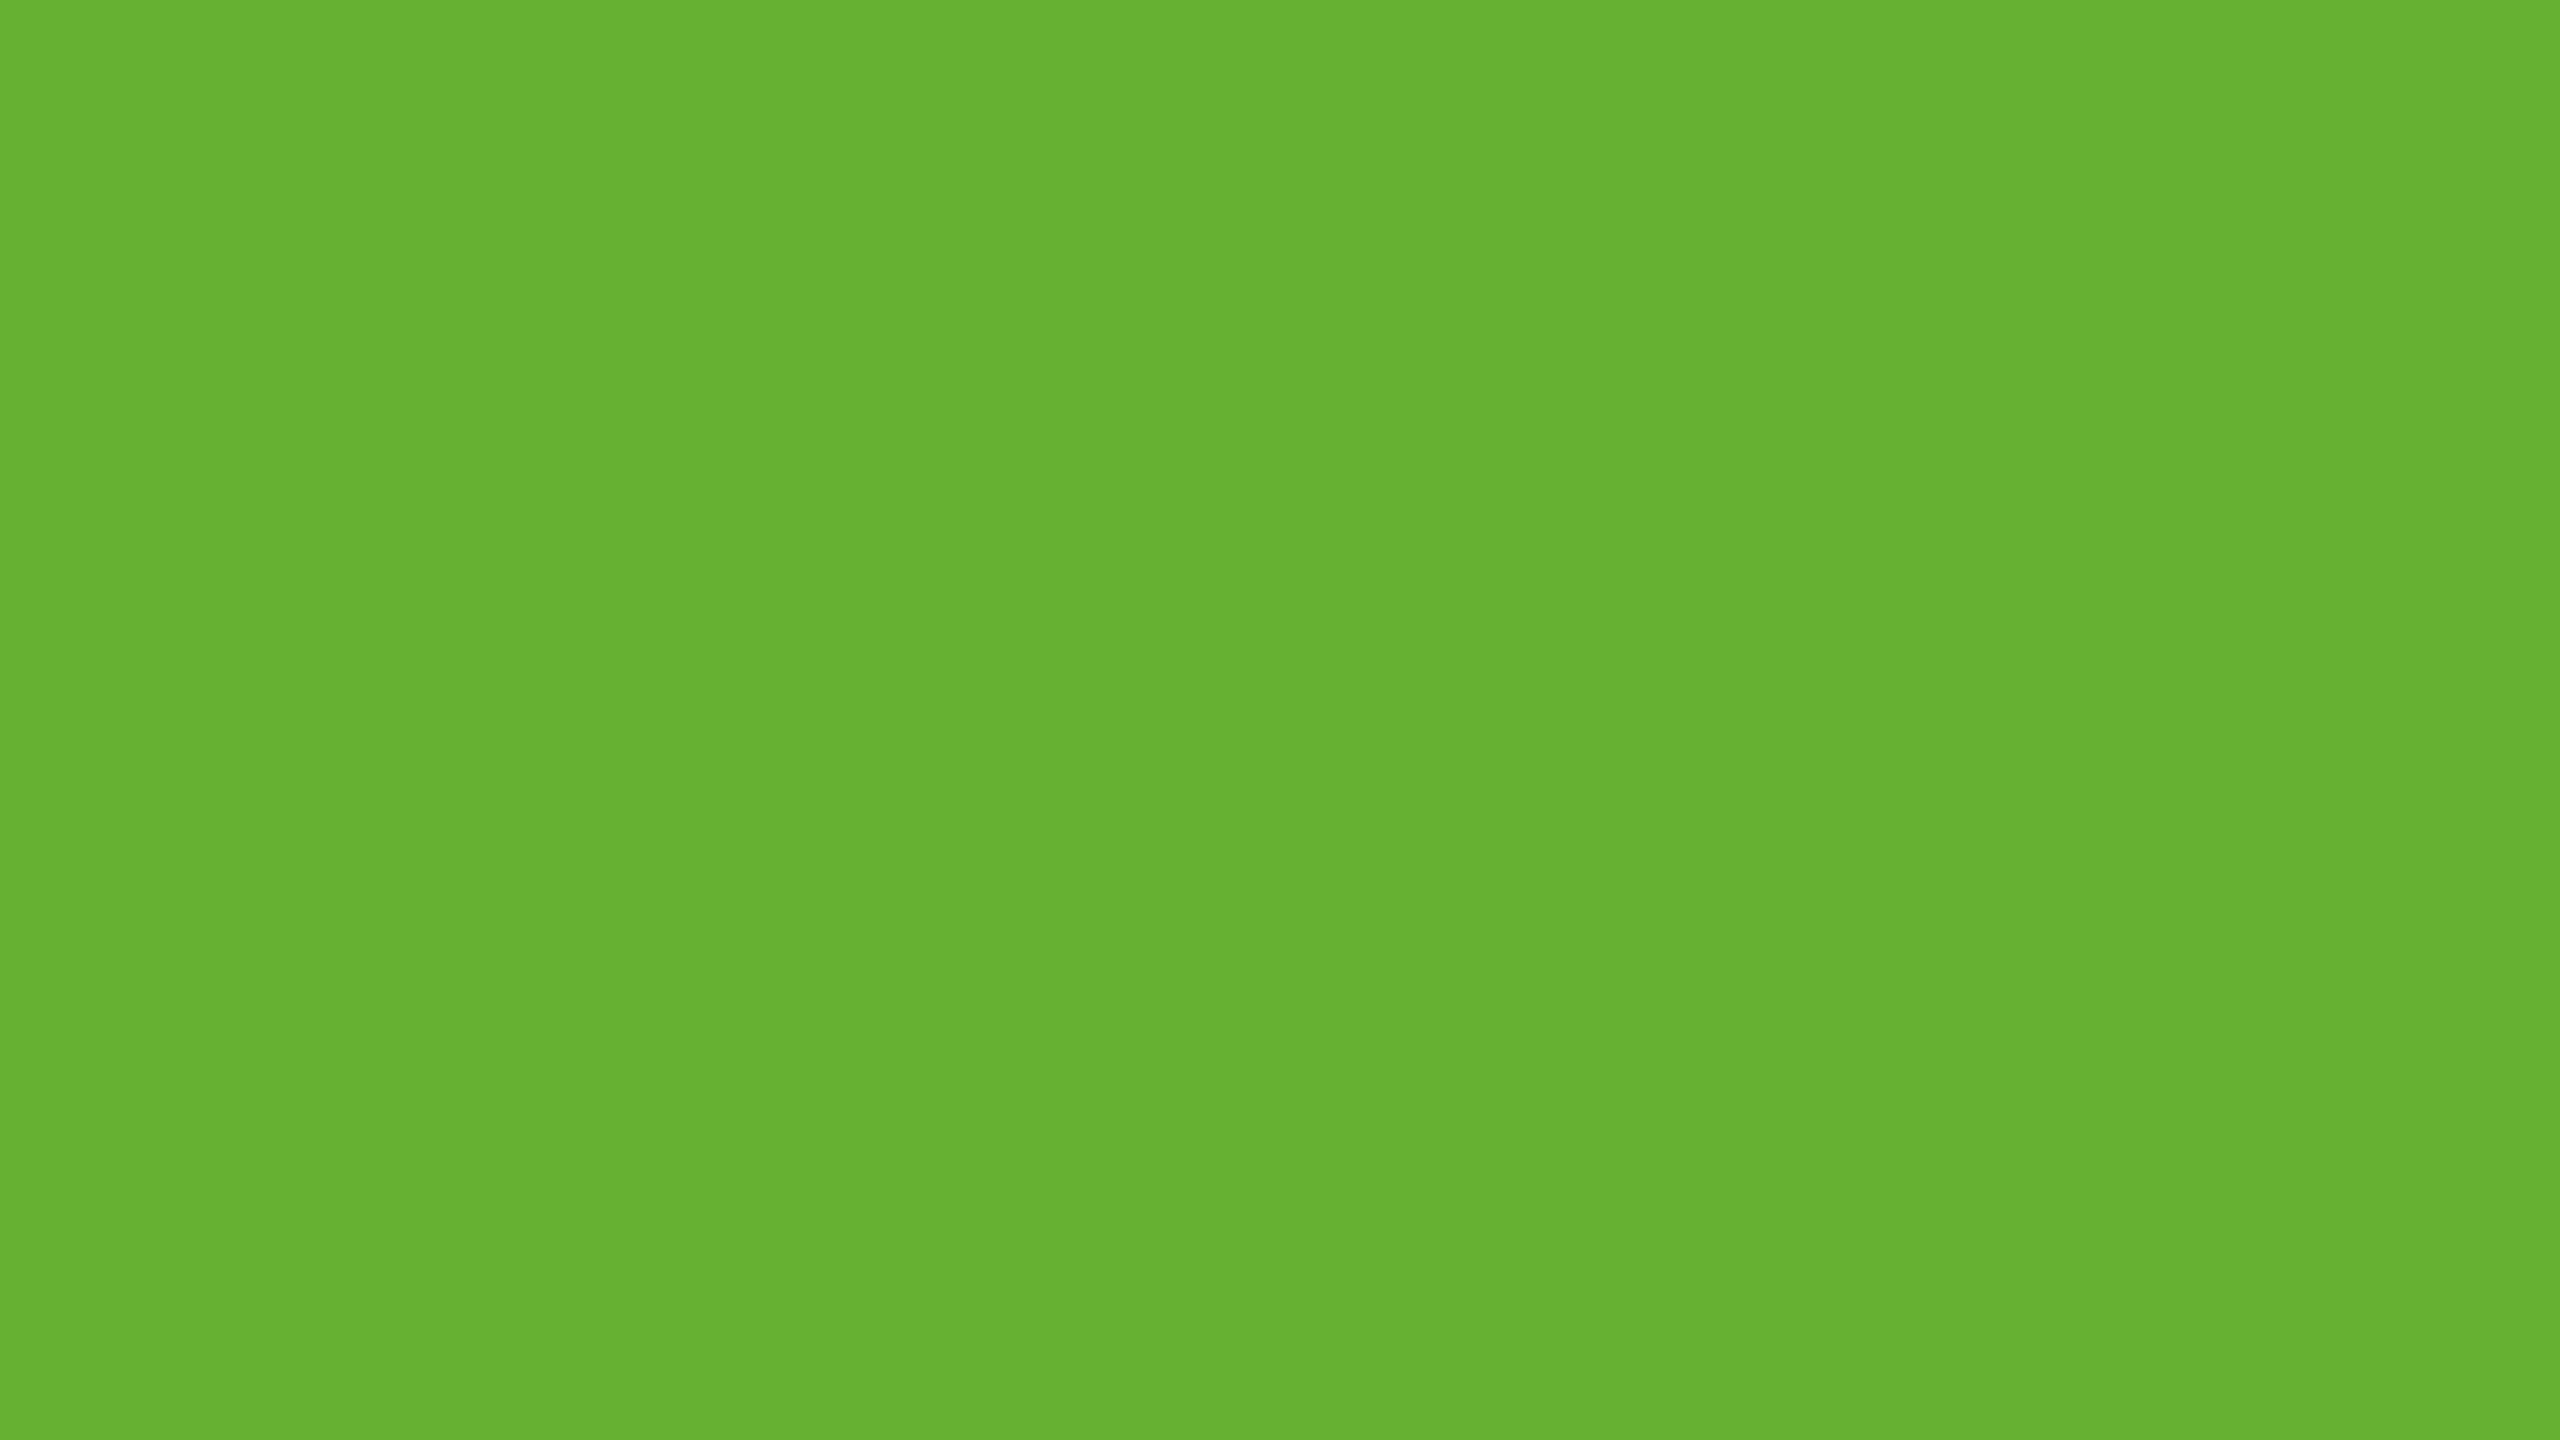 2560x1440 Green RYB Solid Color Background